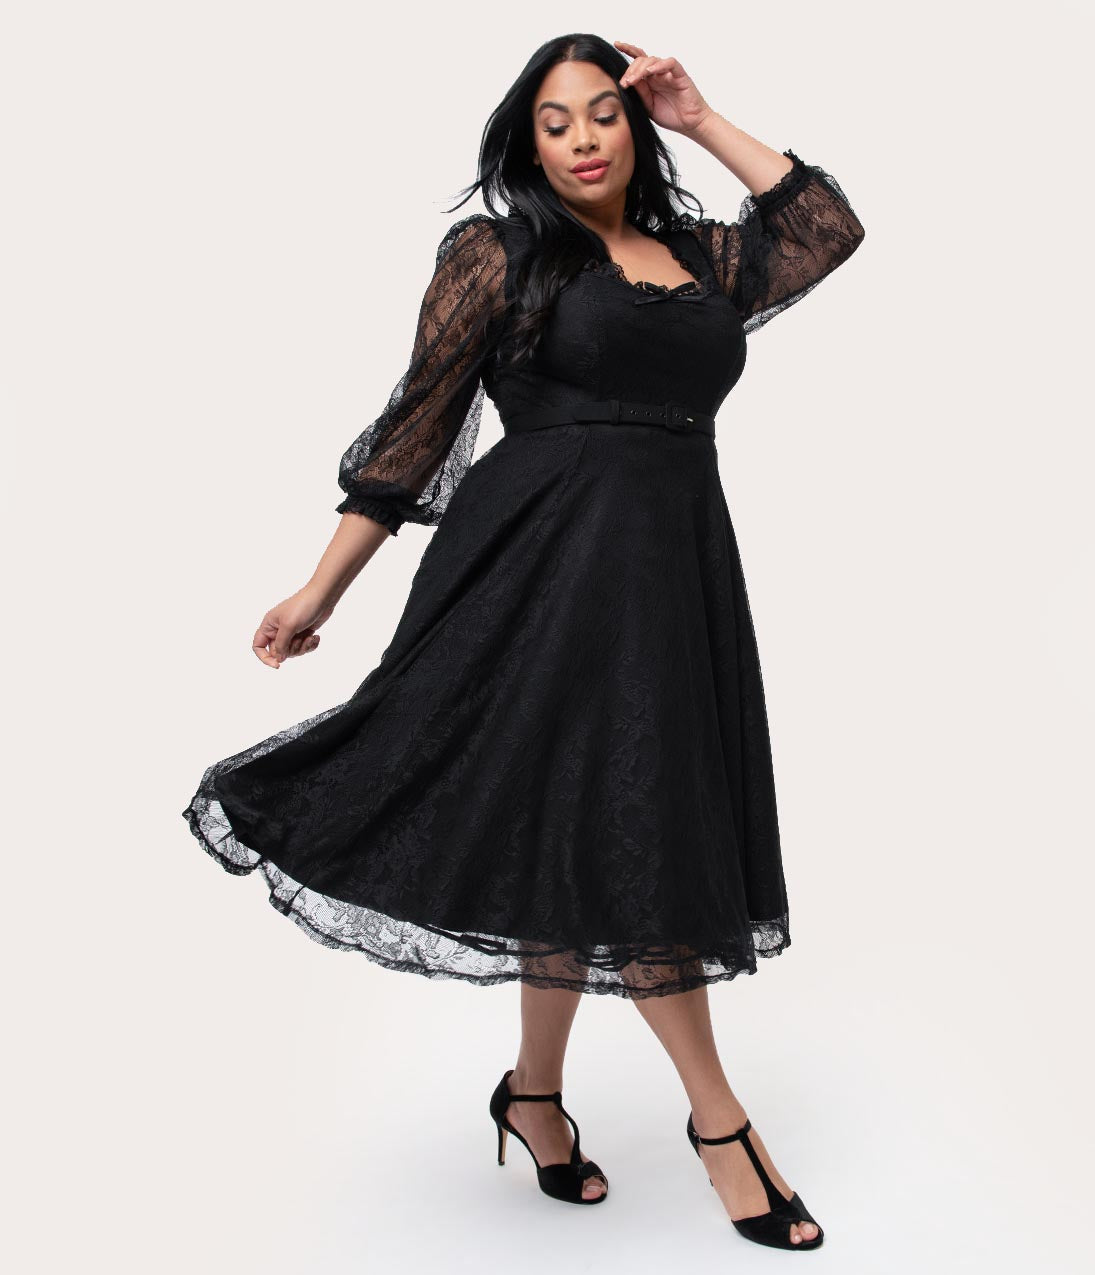 1940s Plus Size Fashion: Style Advice from 1940s to Today Vixen By Micheline Pitt Plus Size Black Lace Decadence Swing Dress $140.00 AT vintagedancer.com